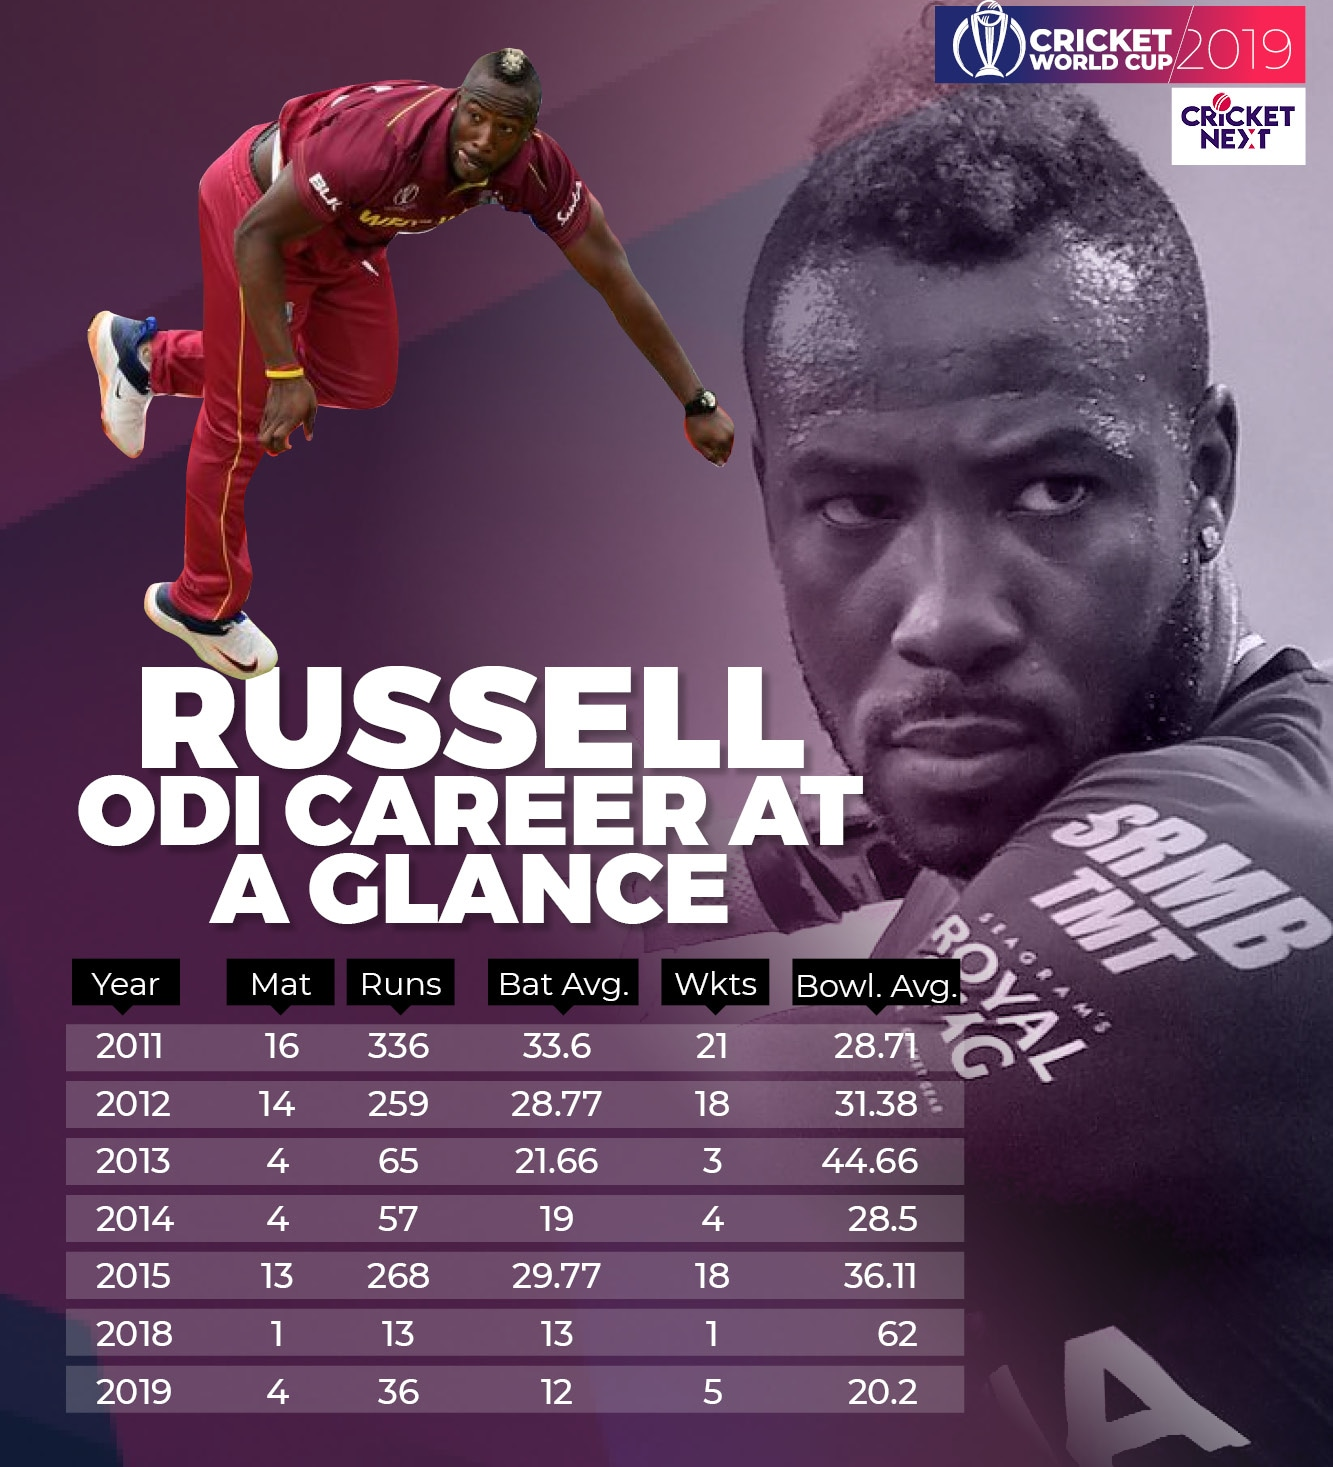 ANDRE RUSSELL2